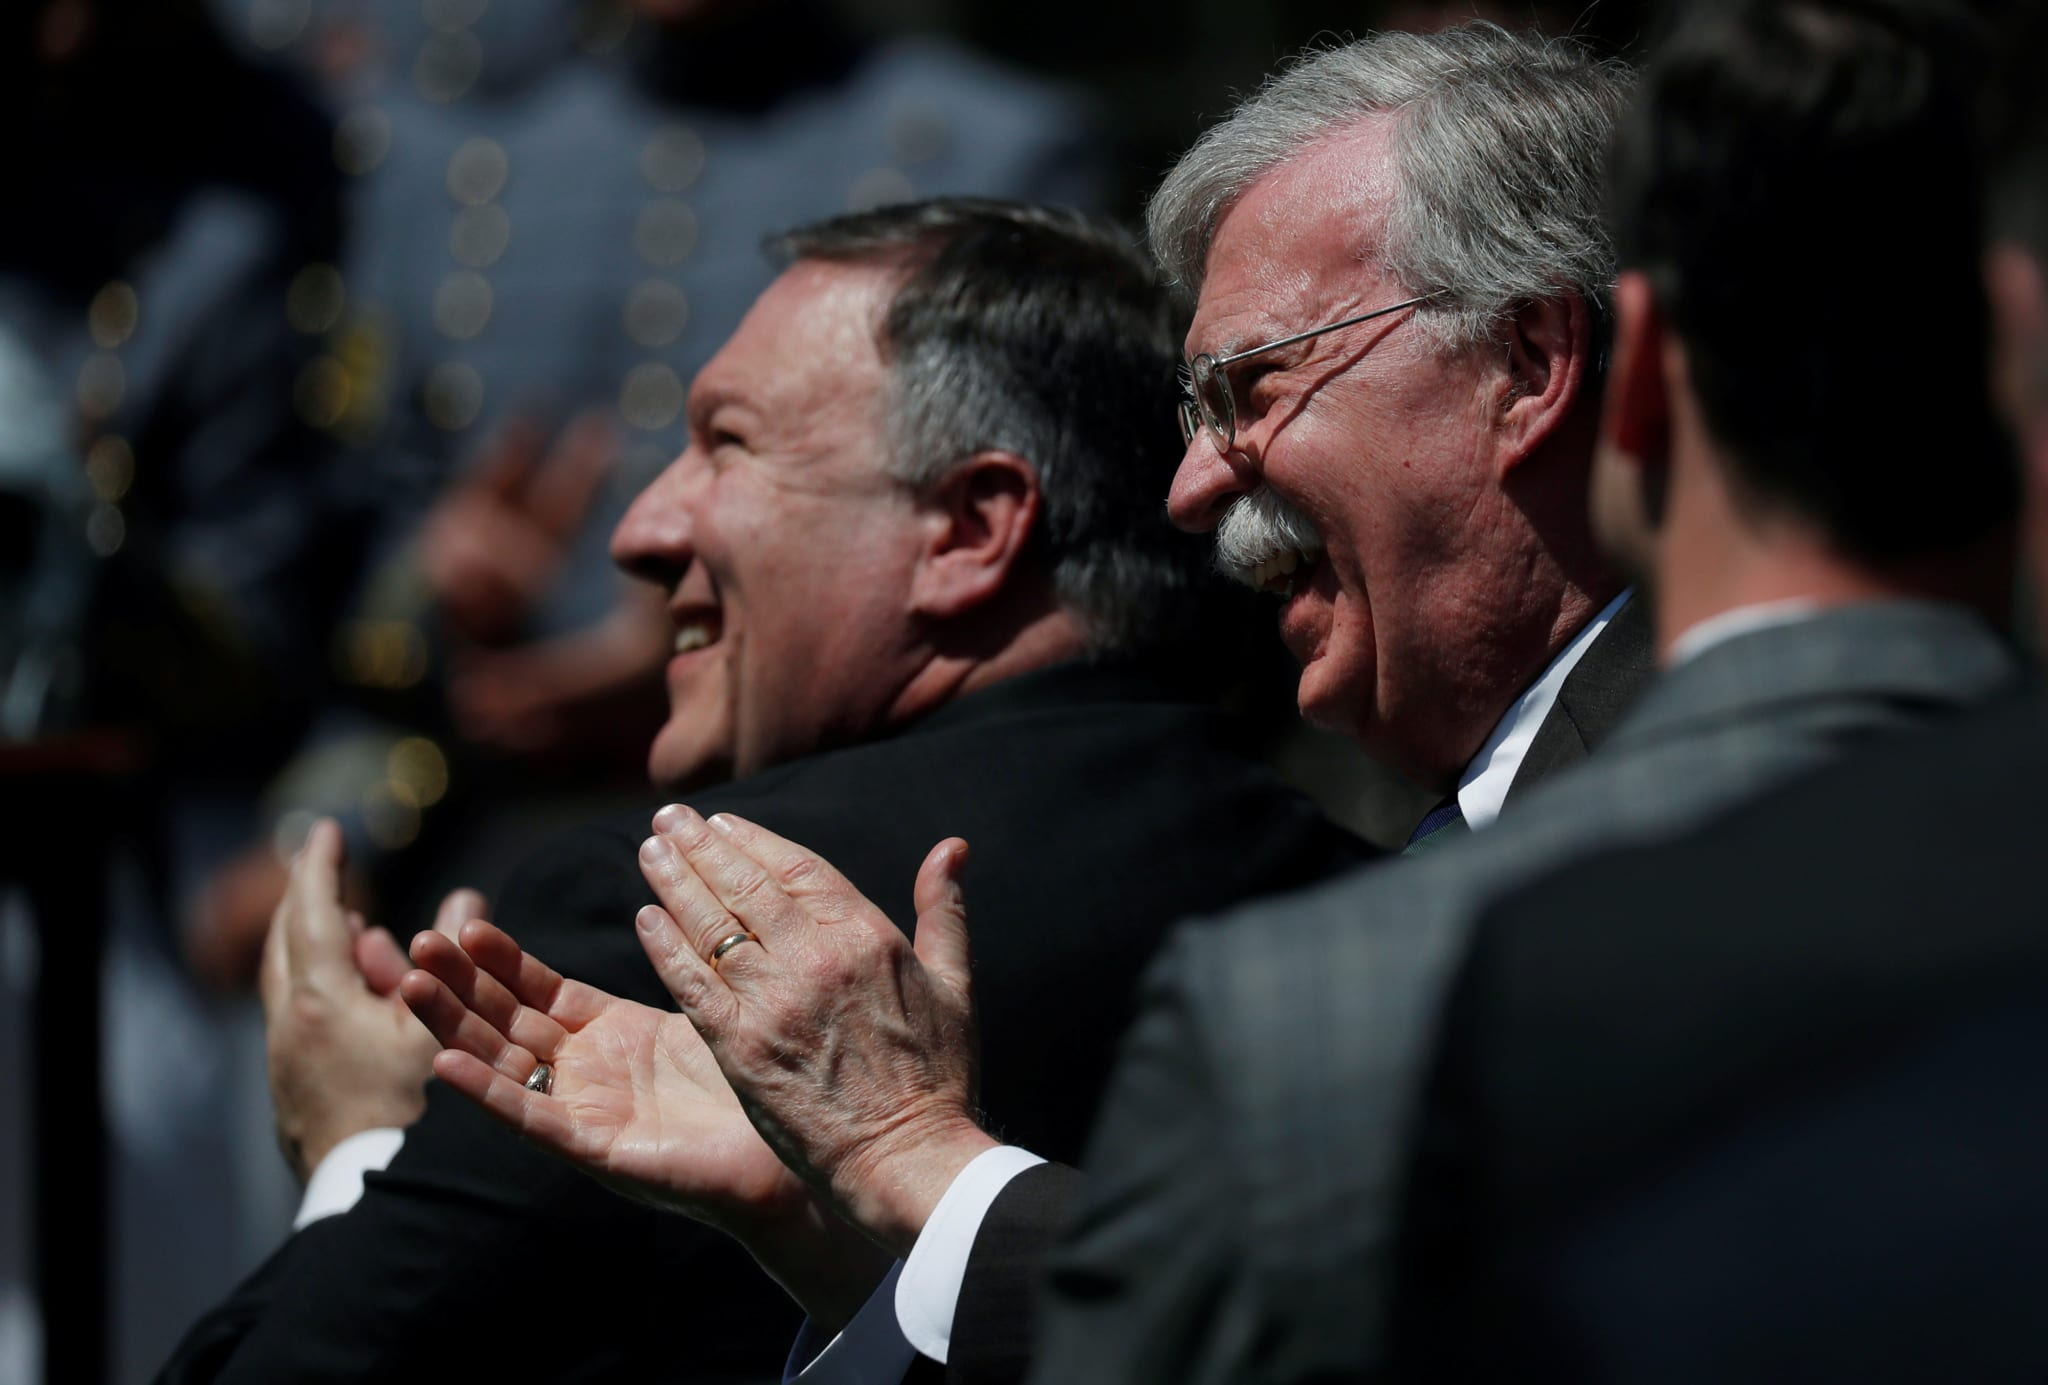 Image [U.S. Secretary of State Mike Pompeo and National Security Advisor John Bolton, Washington, May 1, 2018. REUTERS / Leah Millis]